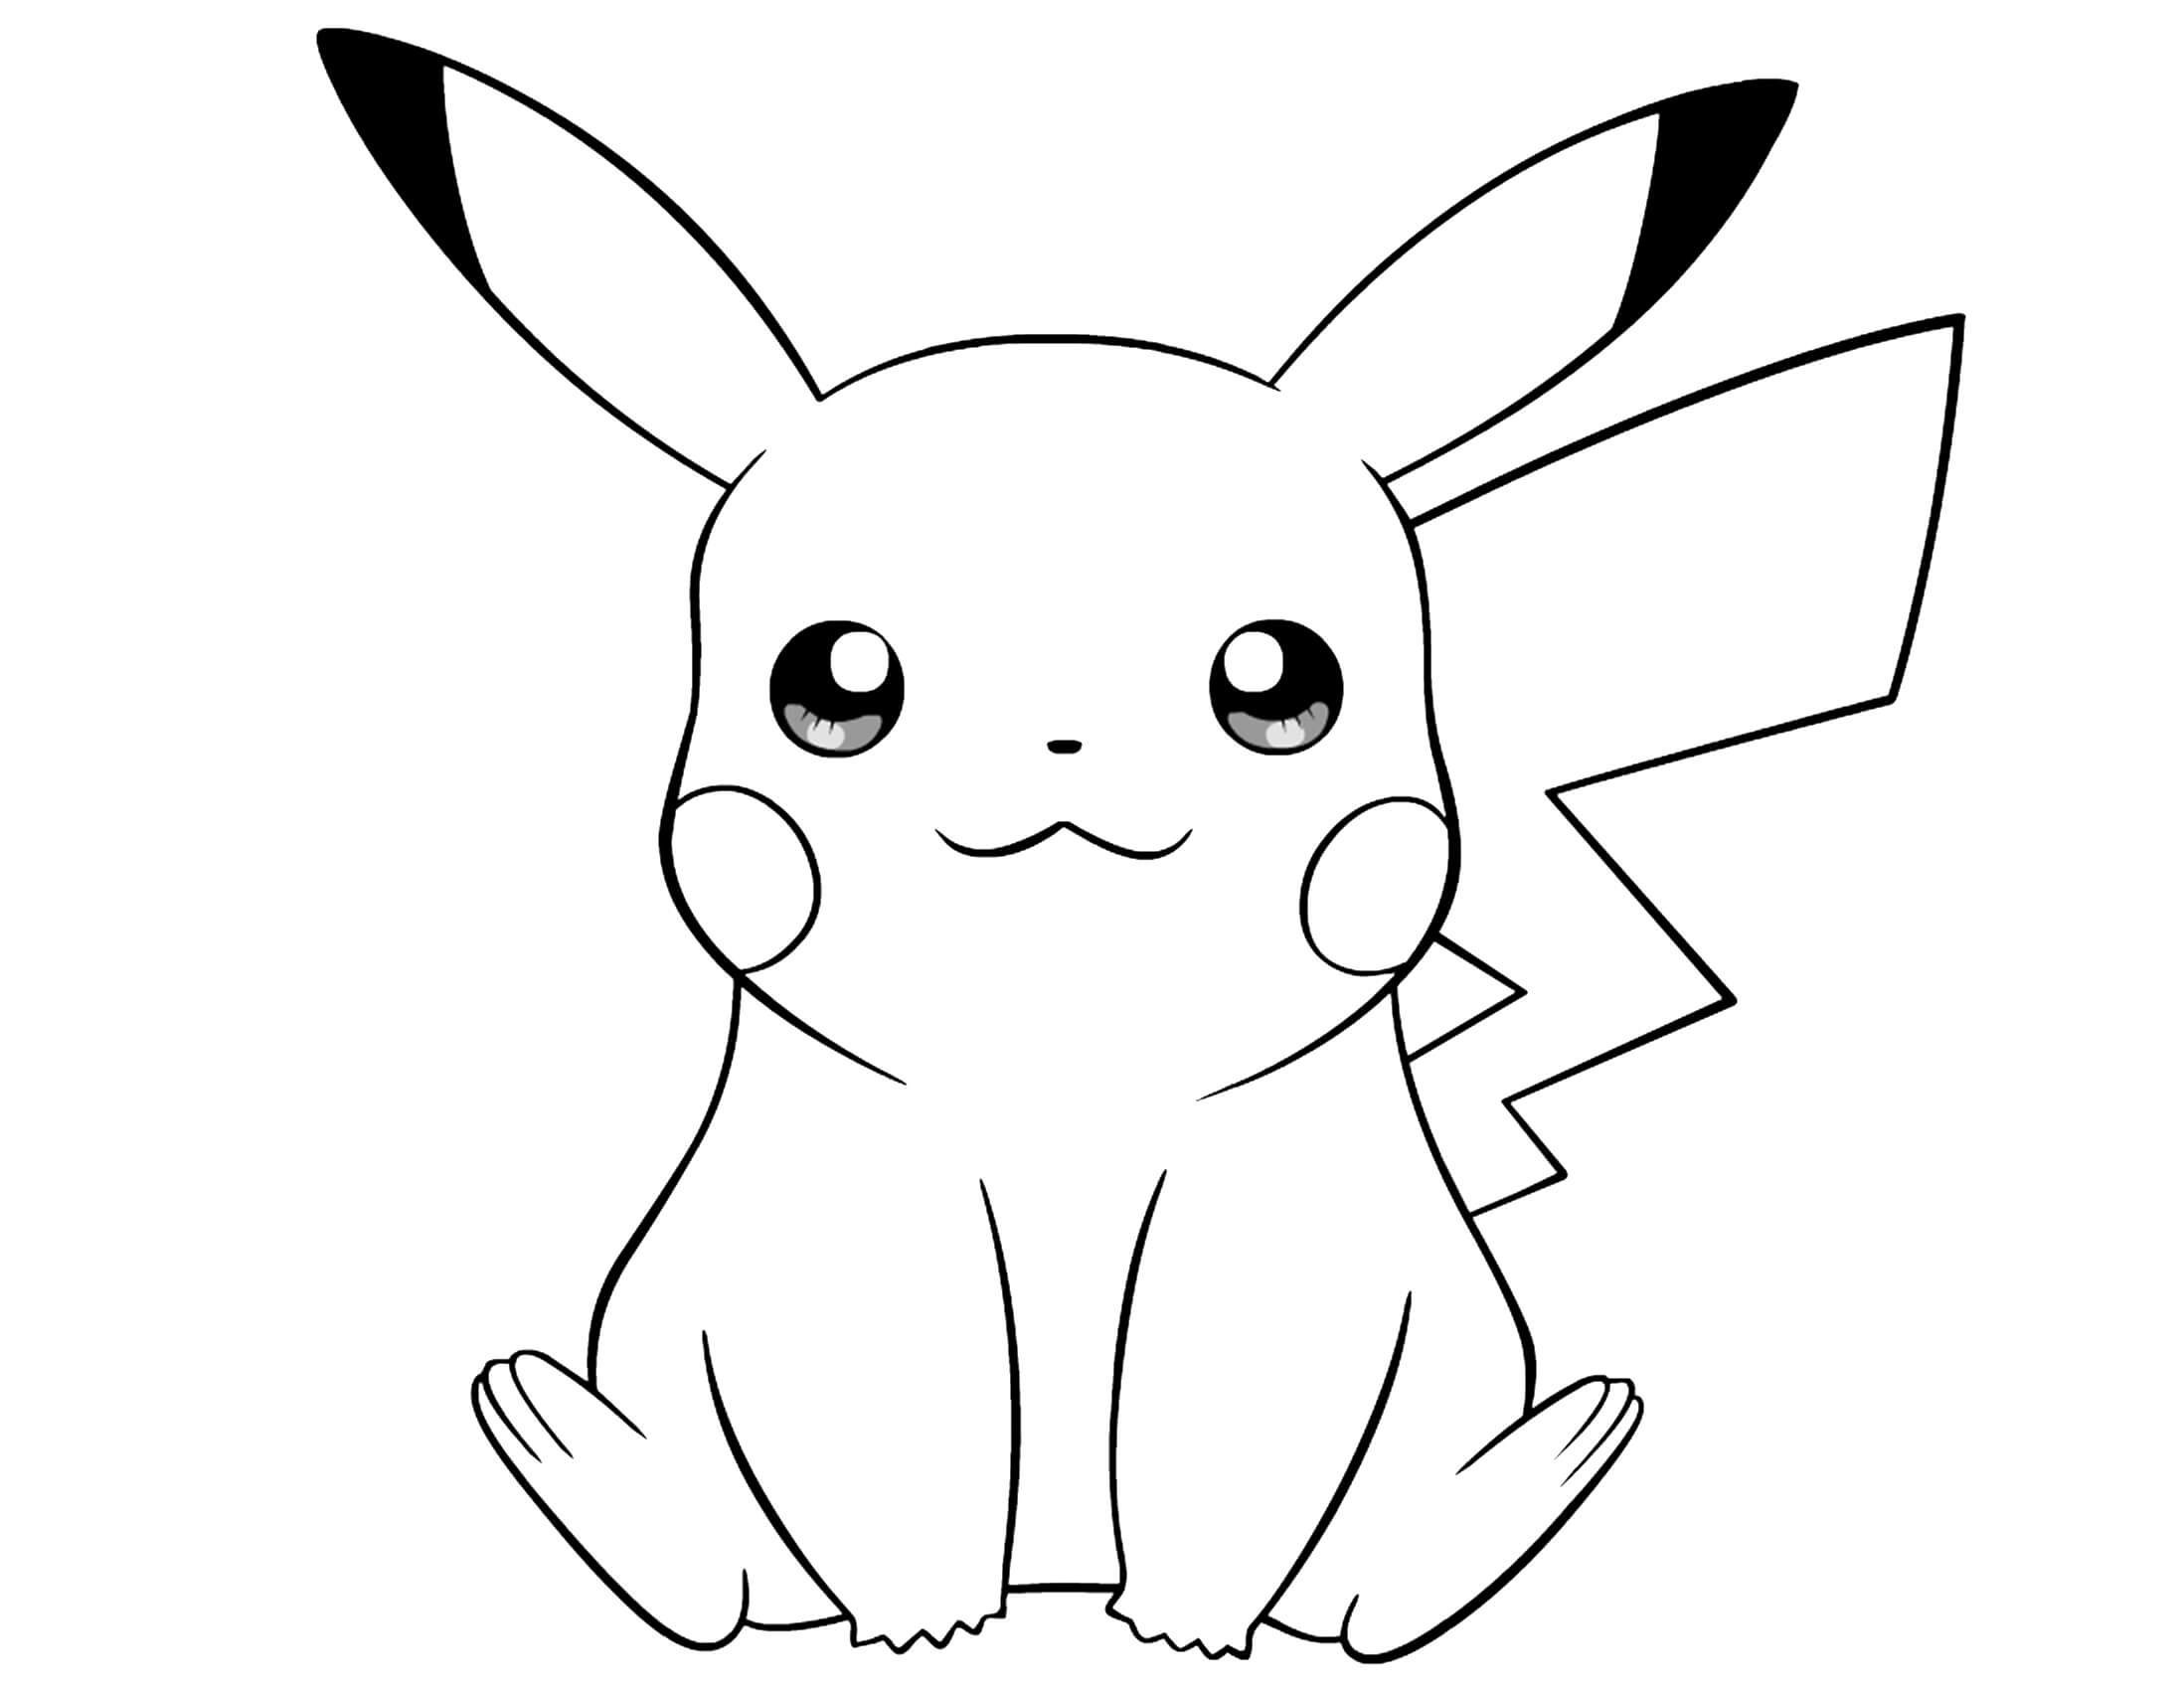 Pikachu clipart coloring page printable Pages coloring to Pikachu print